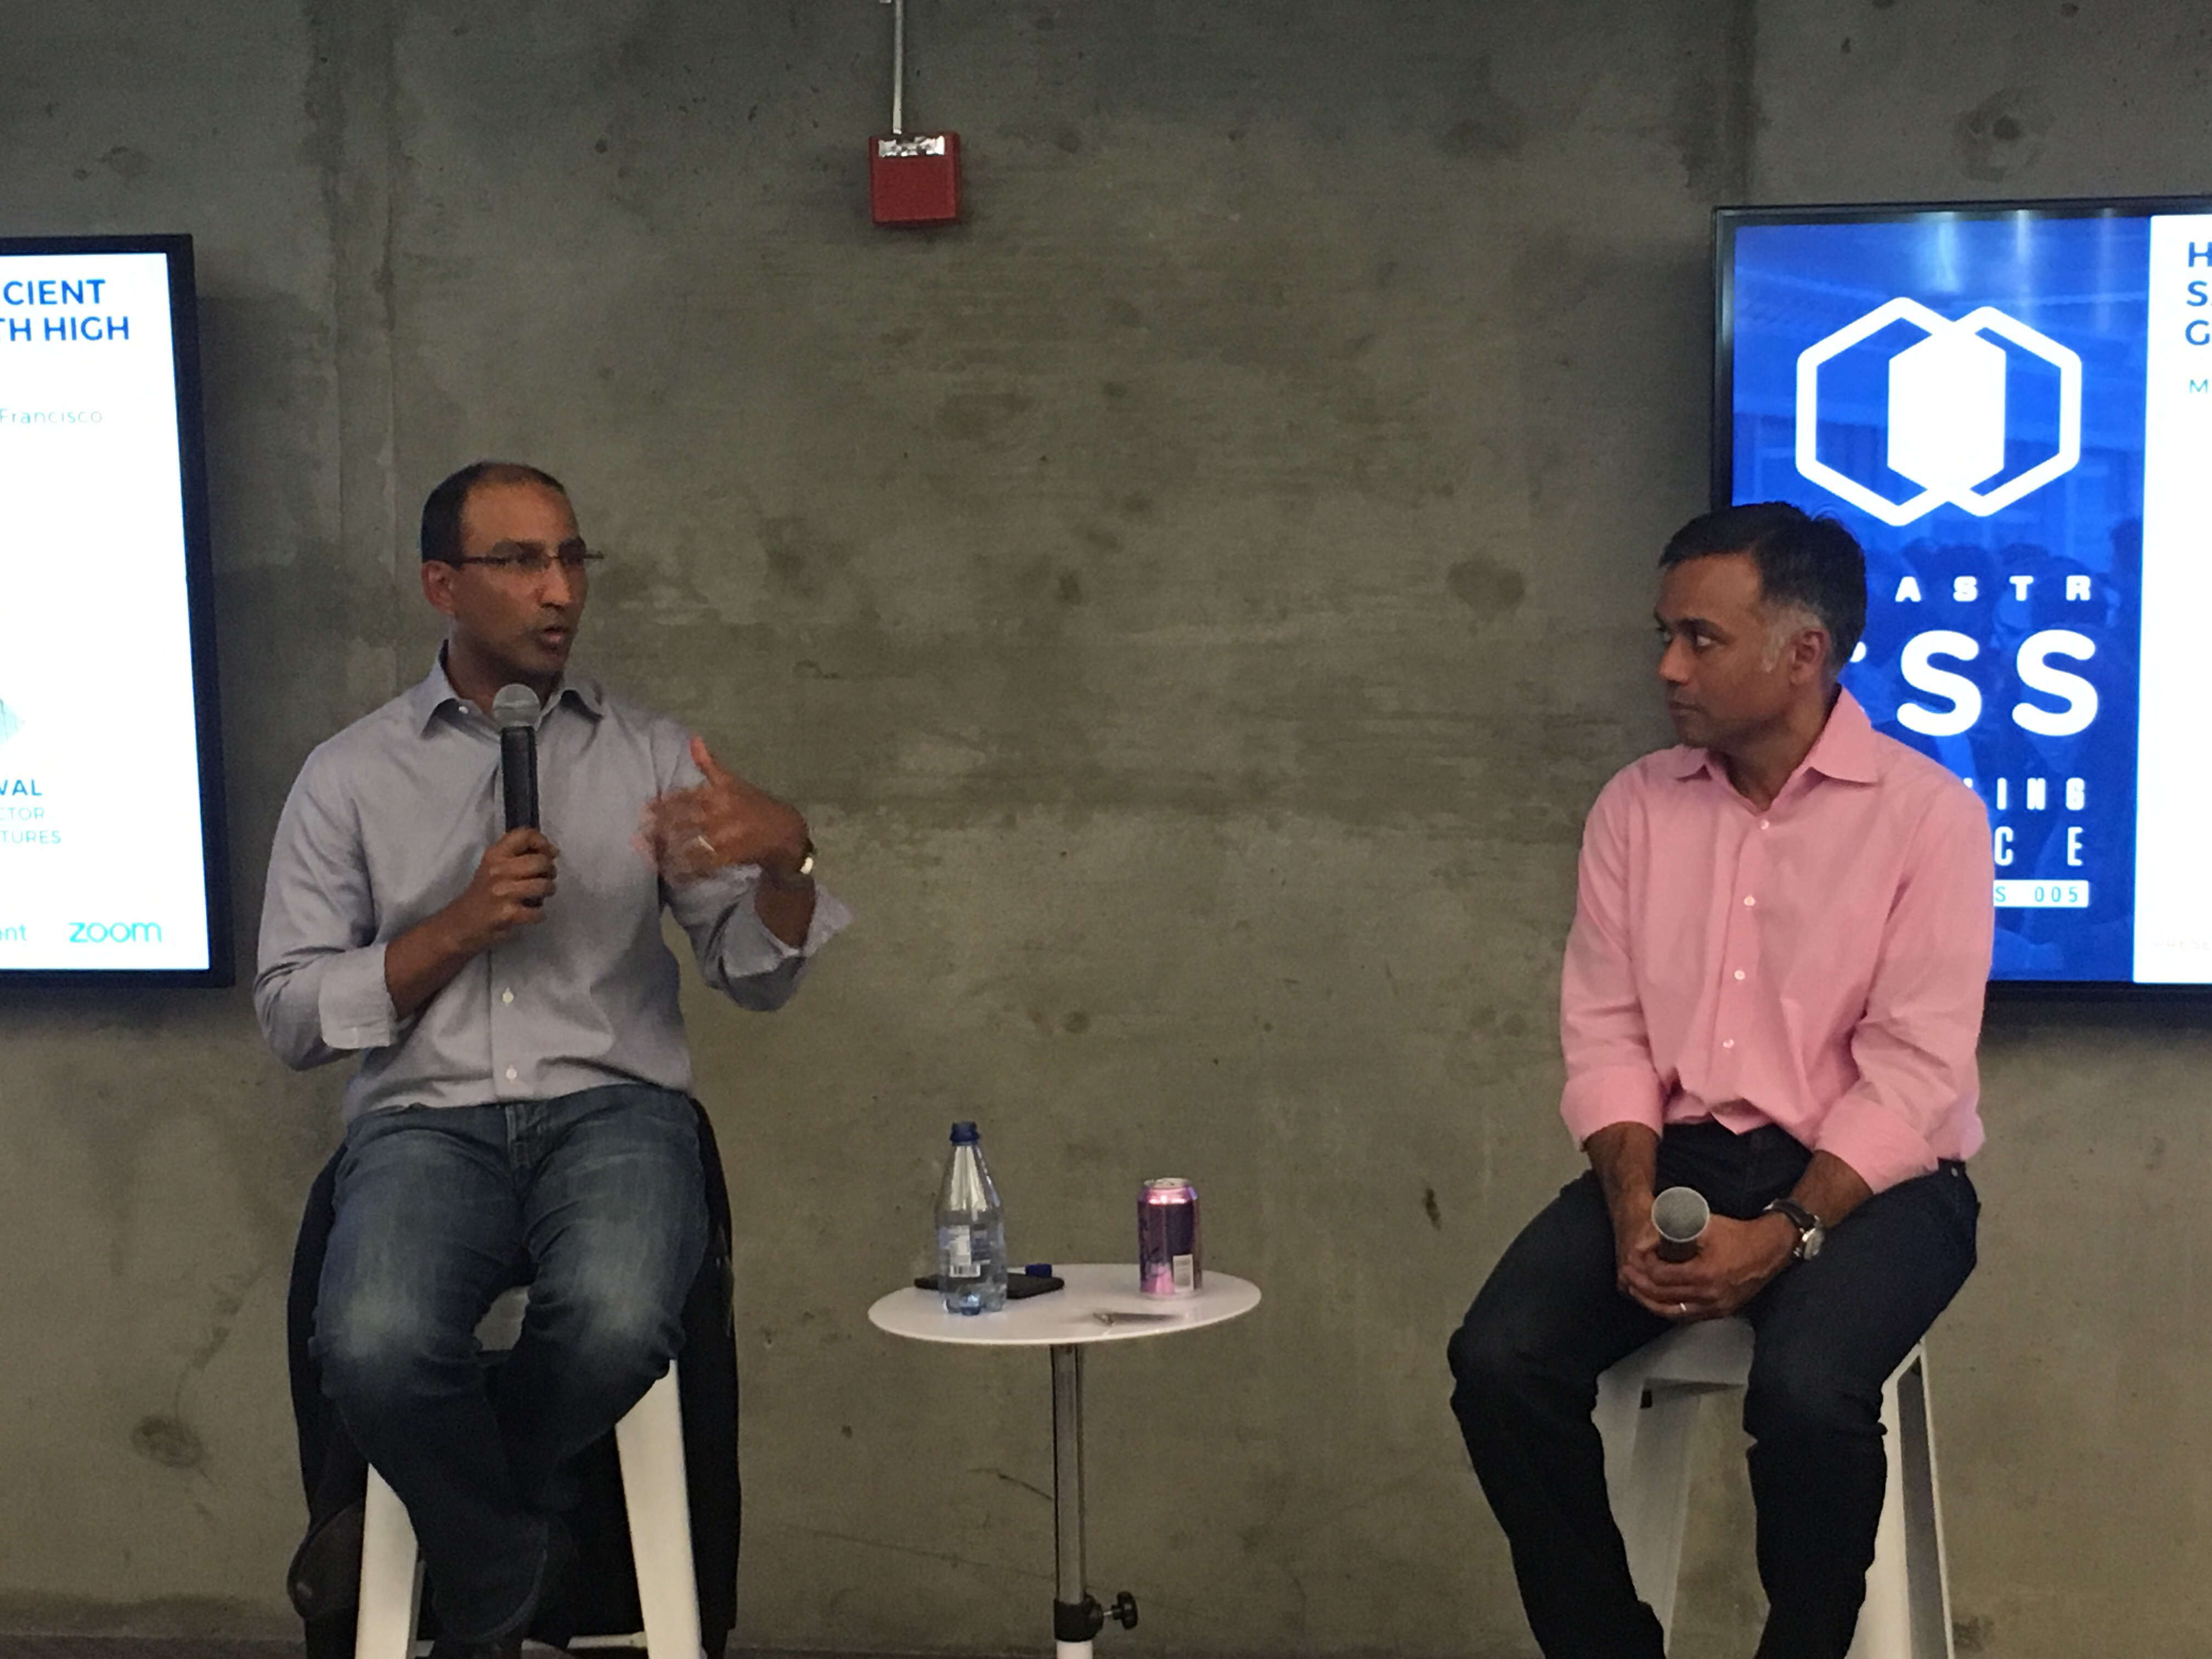 Sameer Dholakia and Ajay Agarwal recollecting early days at Trilogy - Paubox